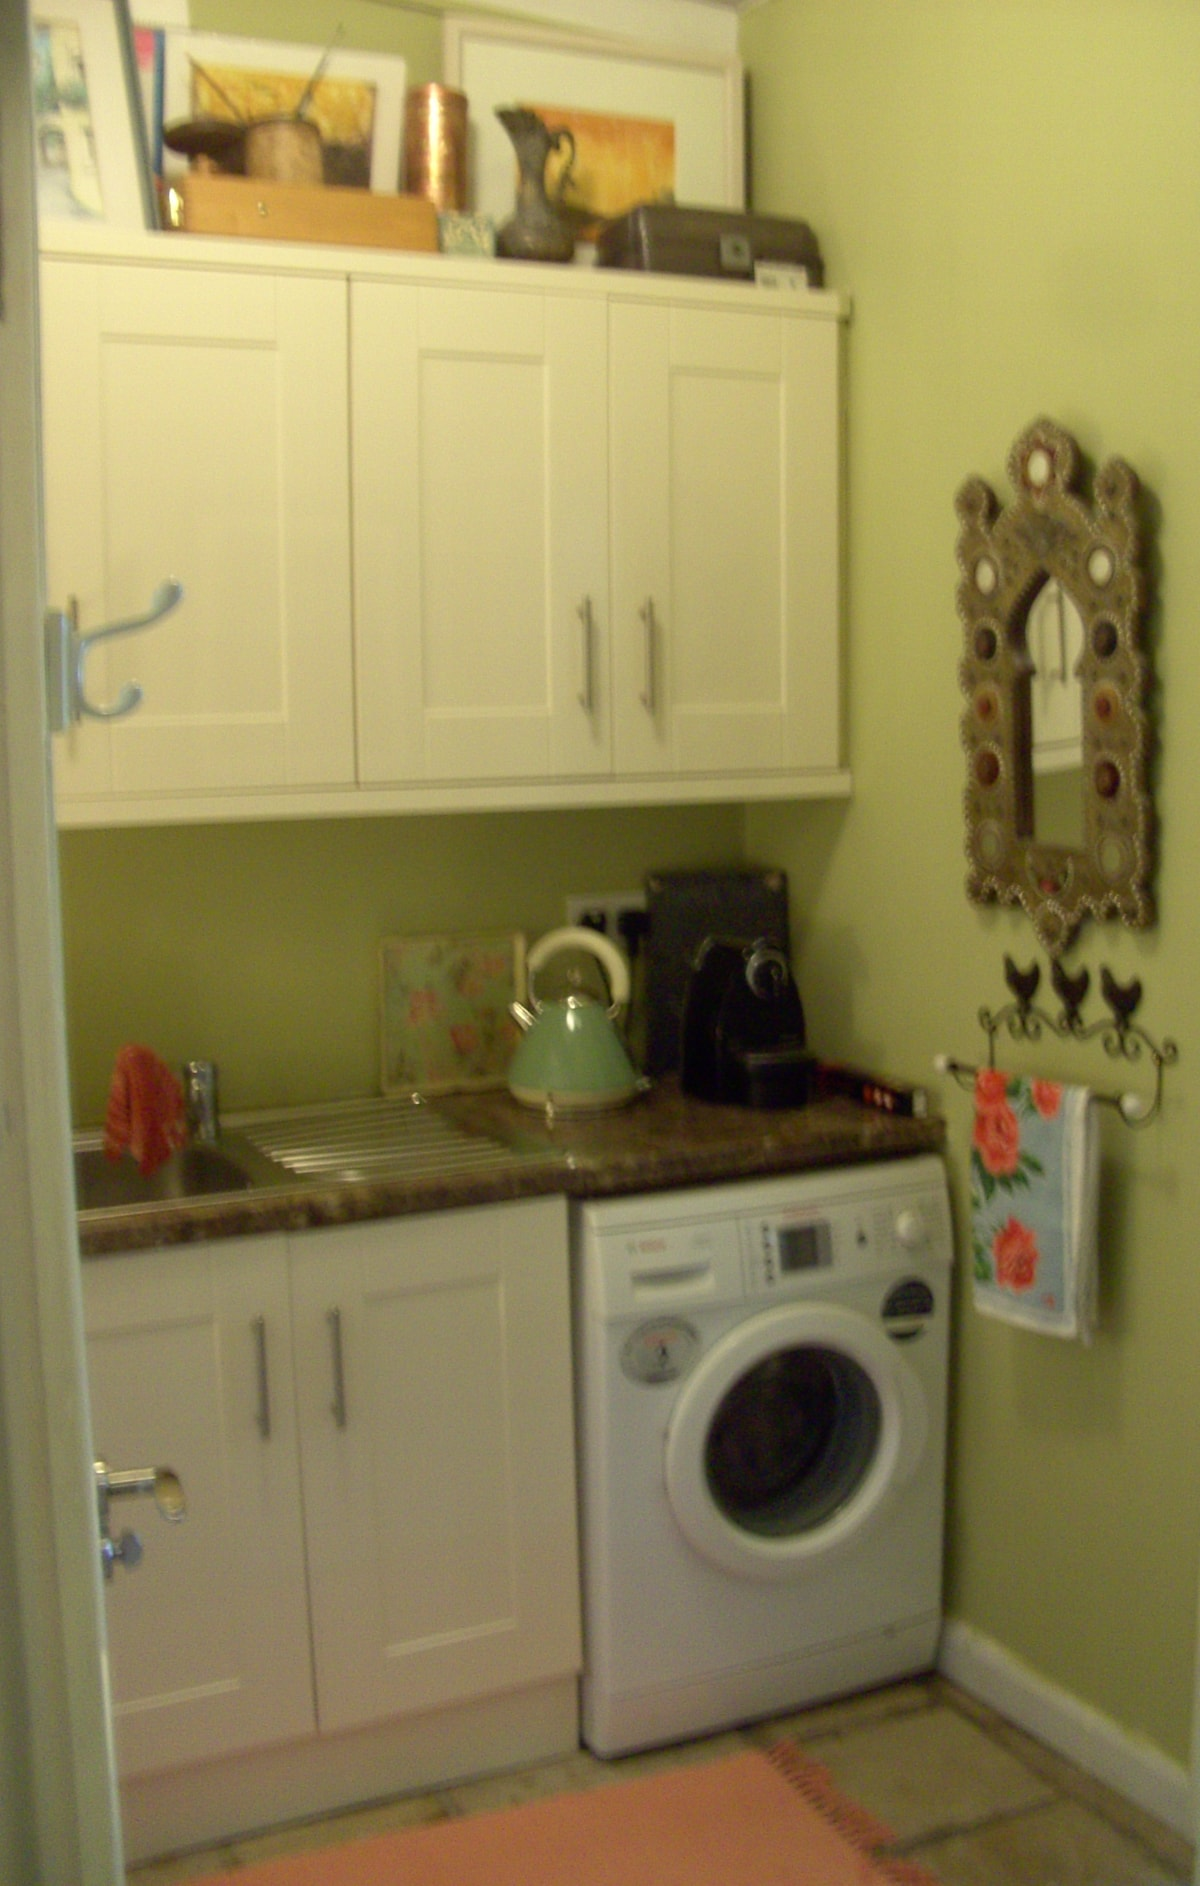 Seperate Kitchenette with washing machine